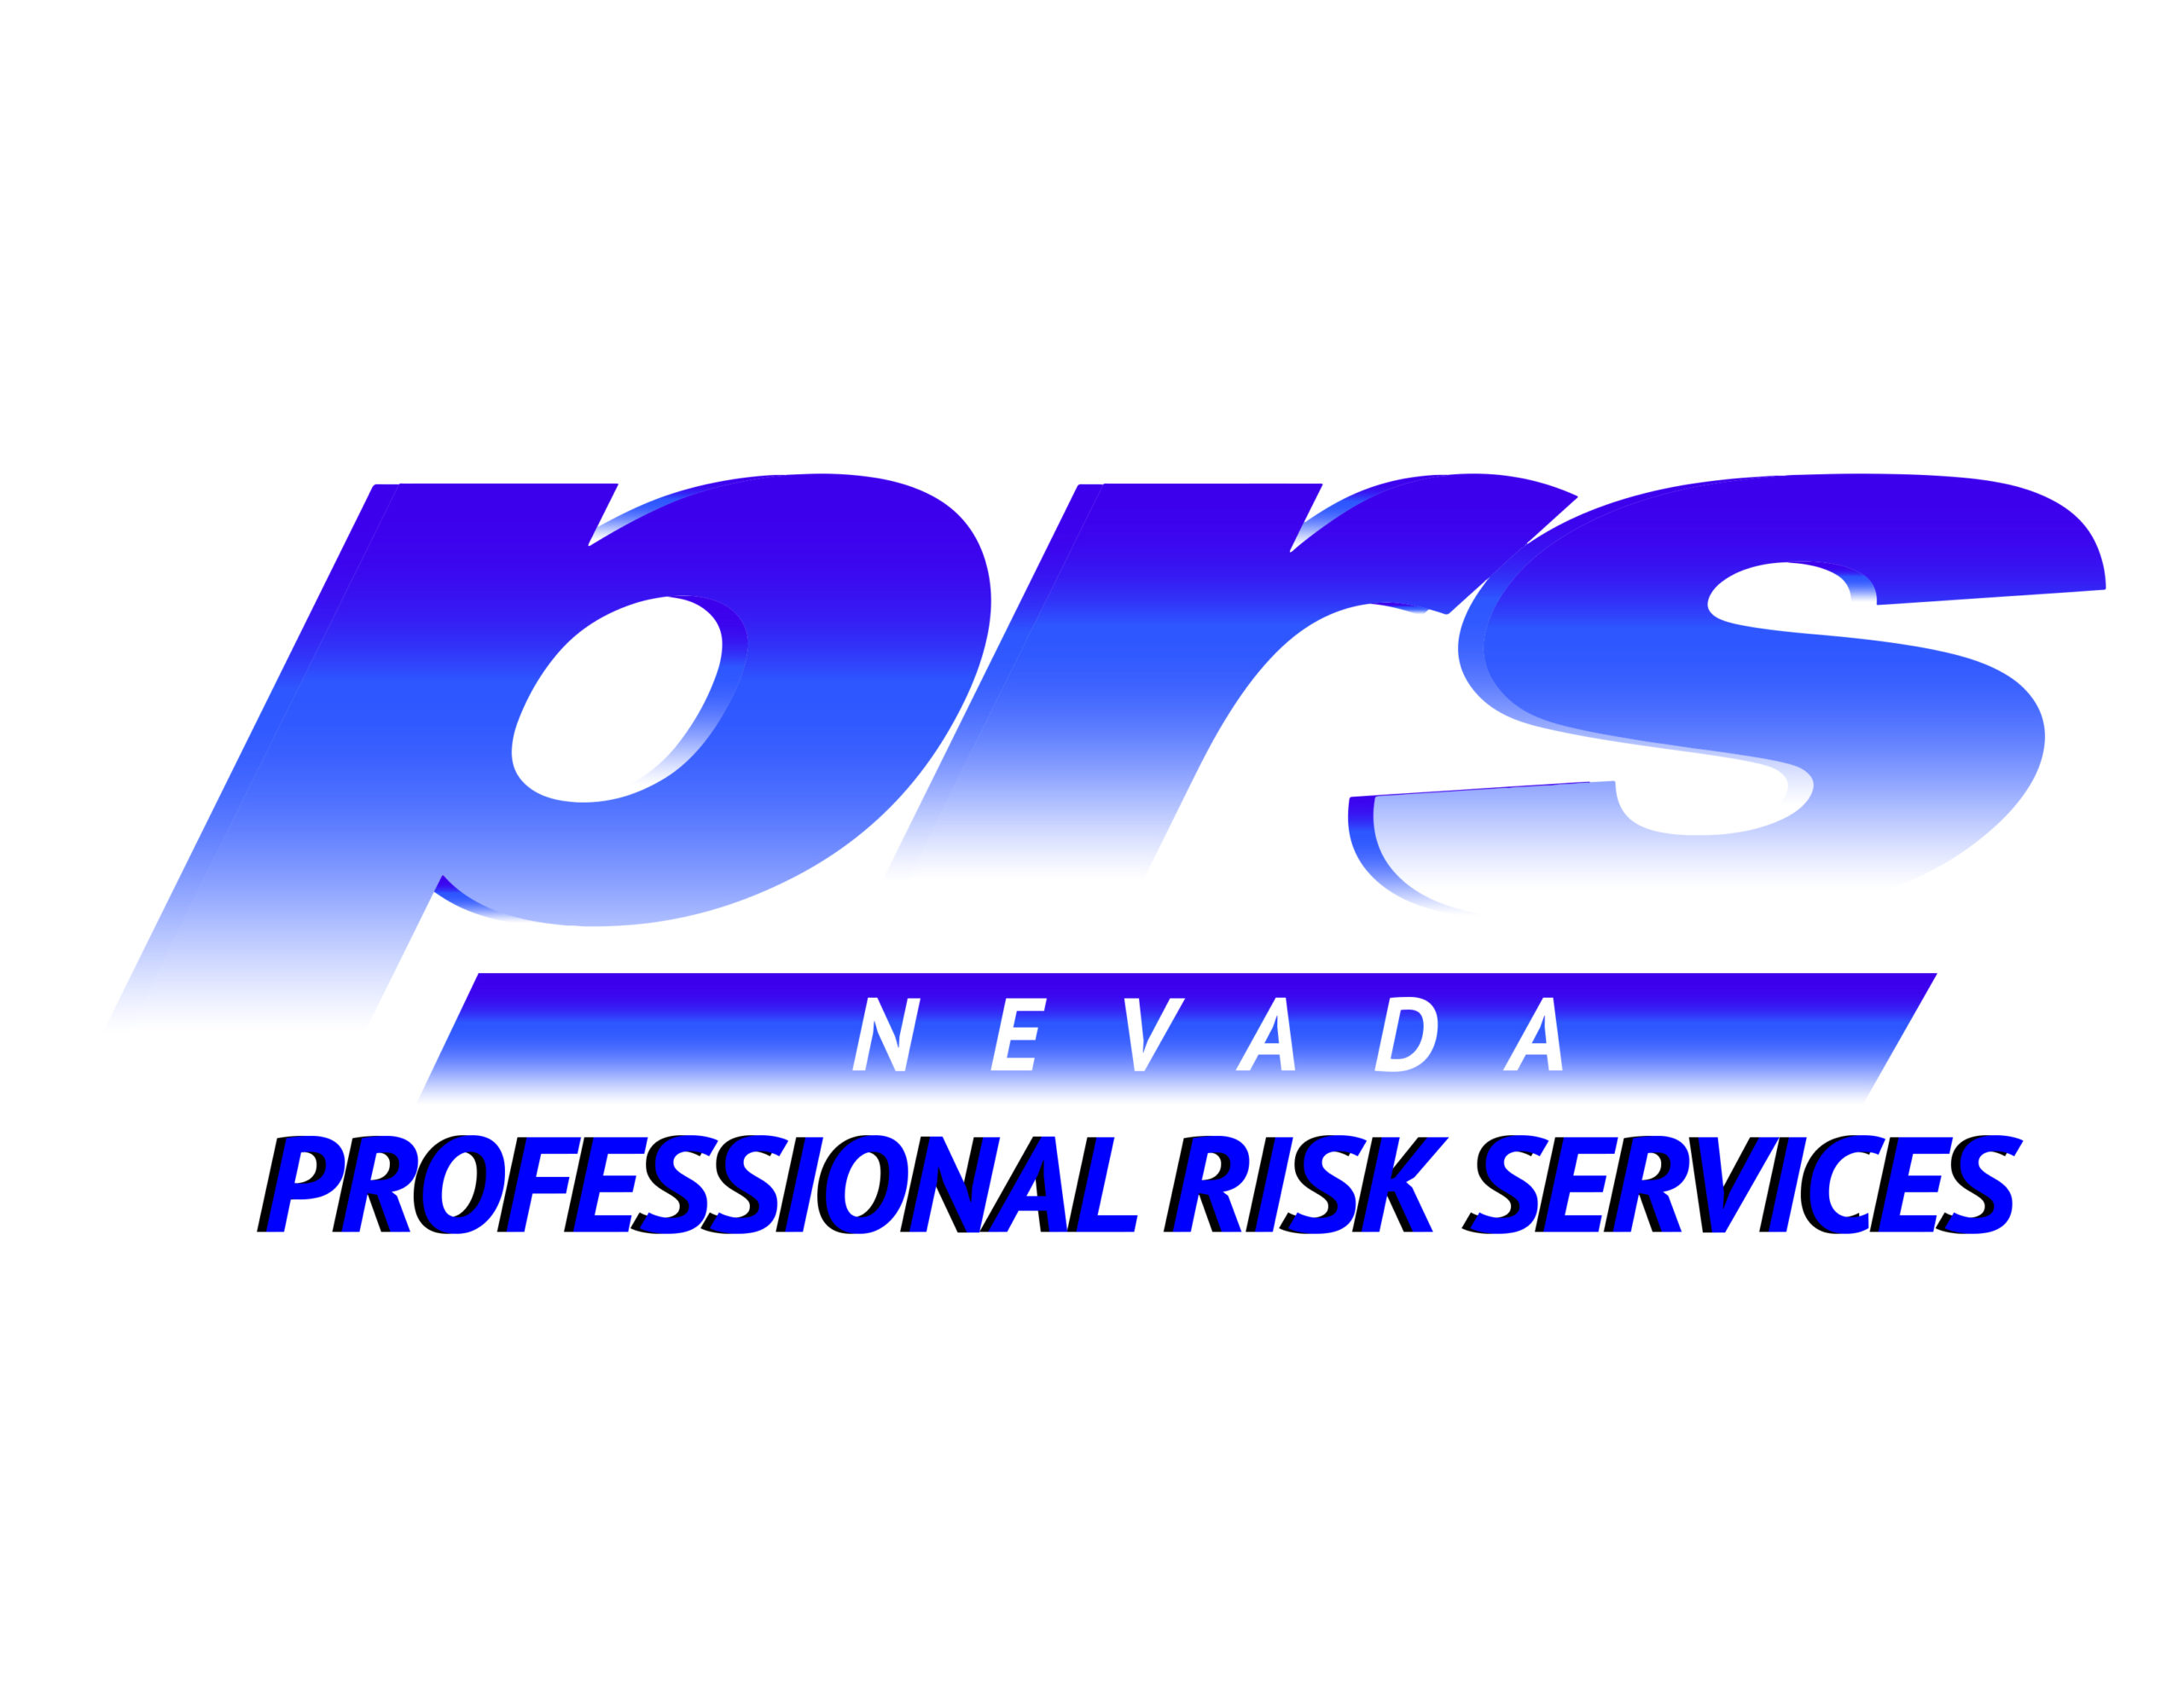 prsnevada scaled - Professional Risk Services NV